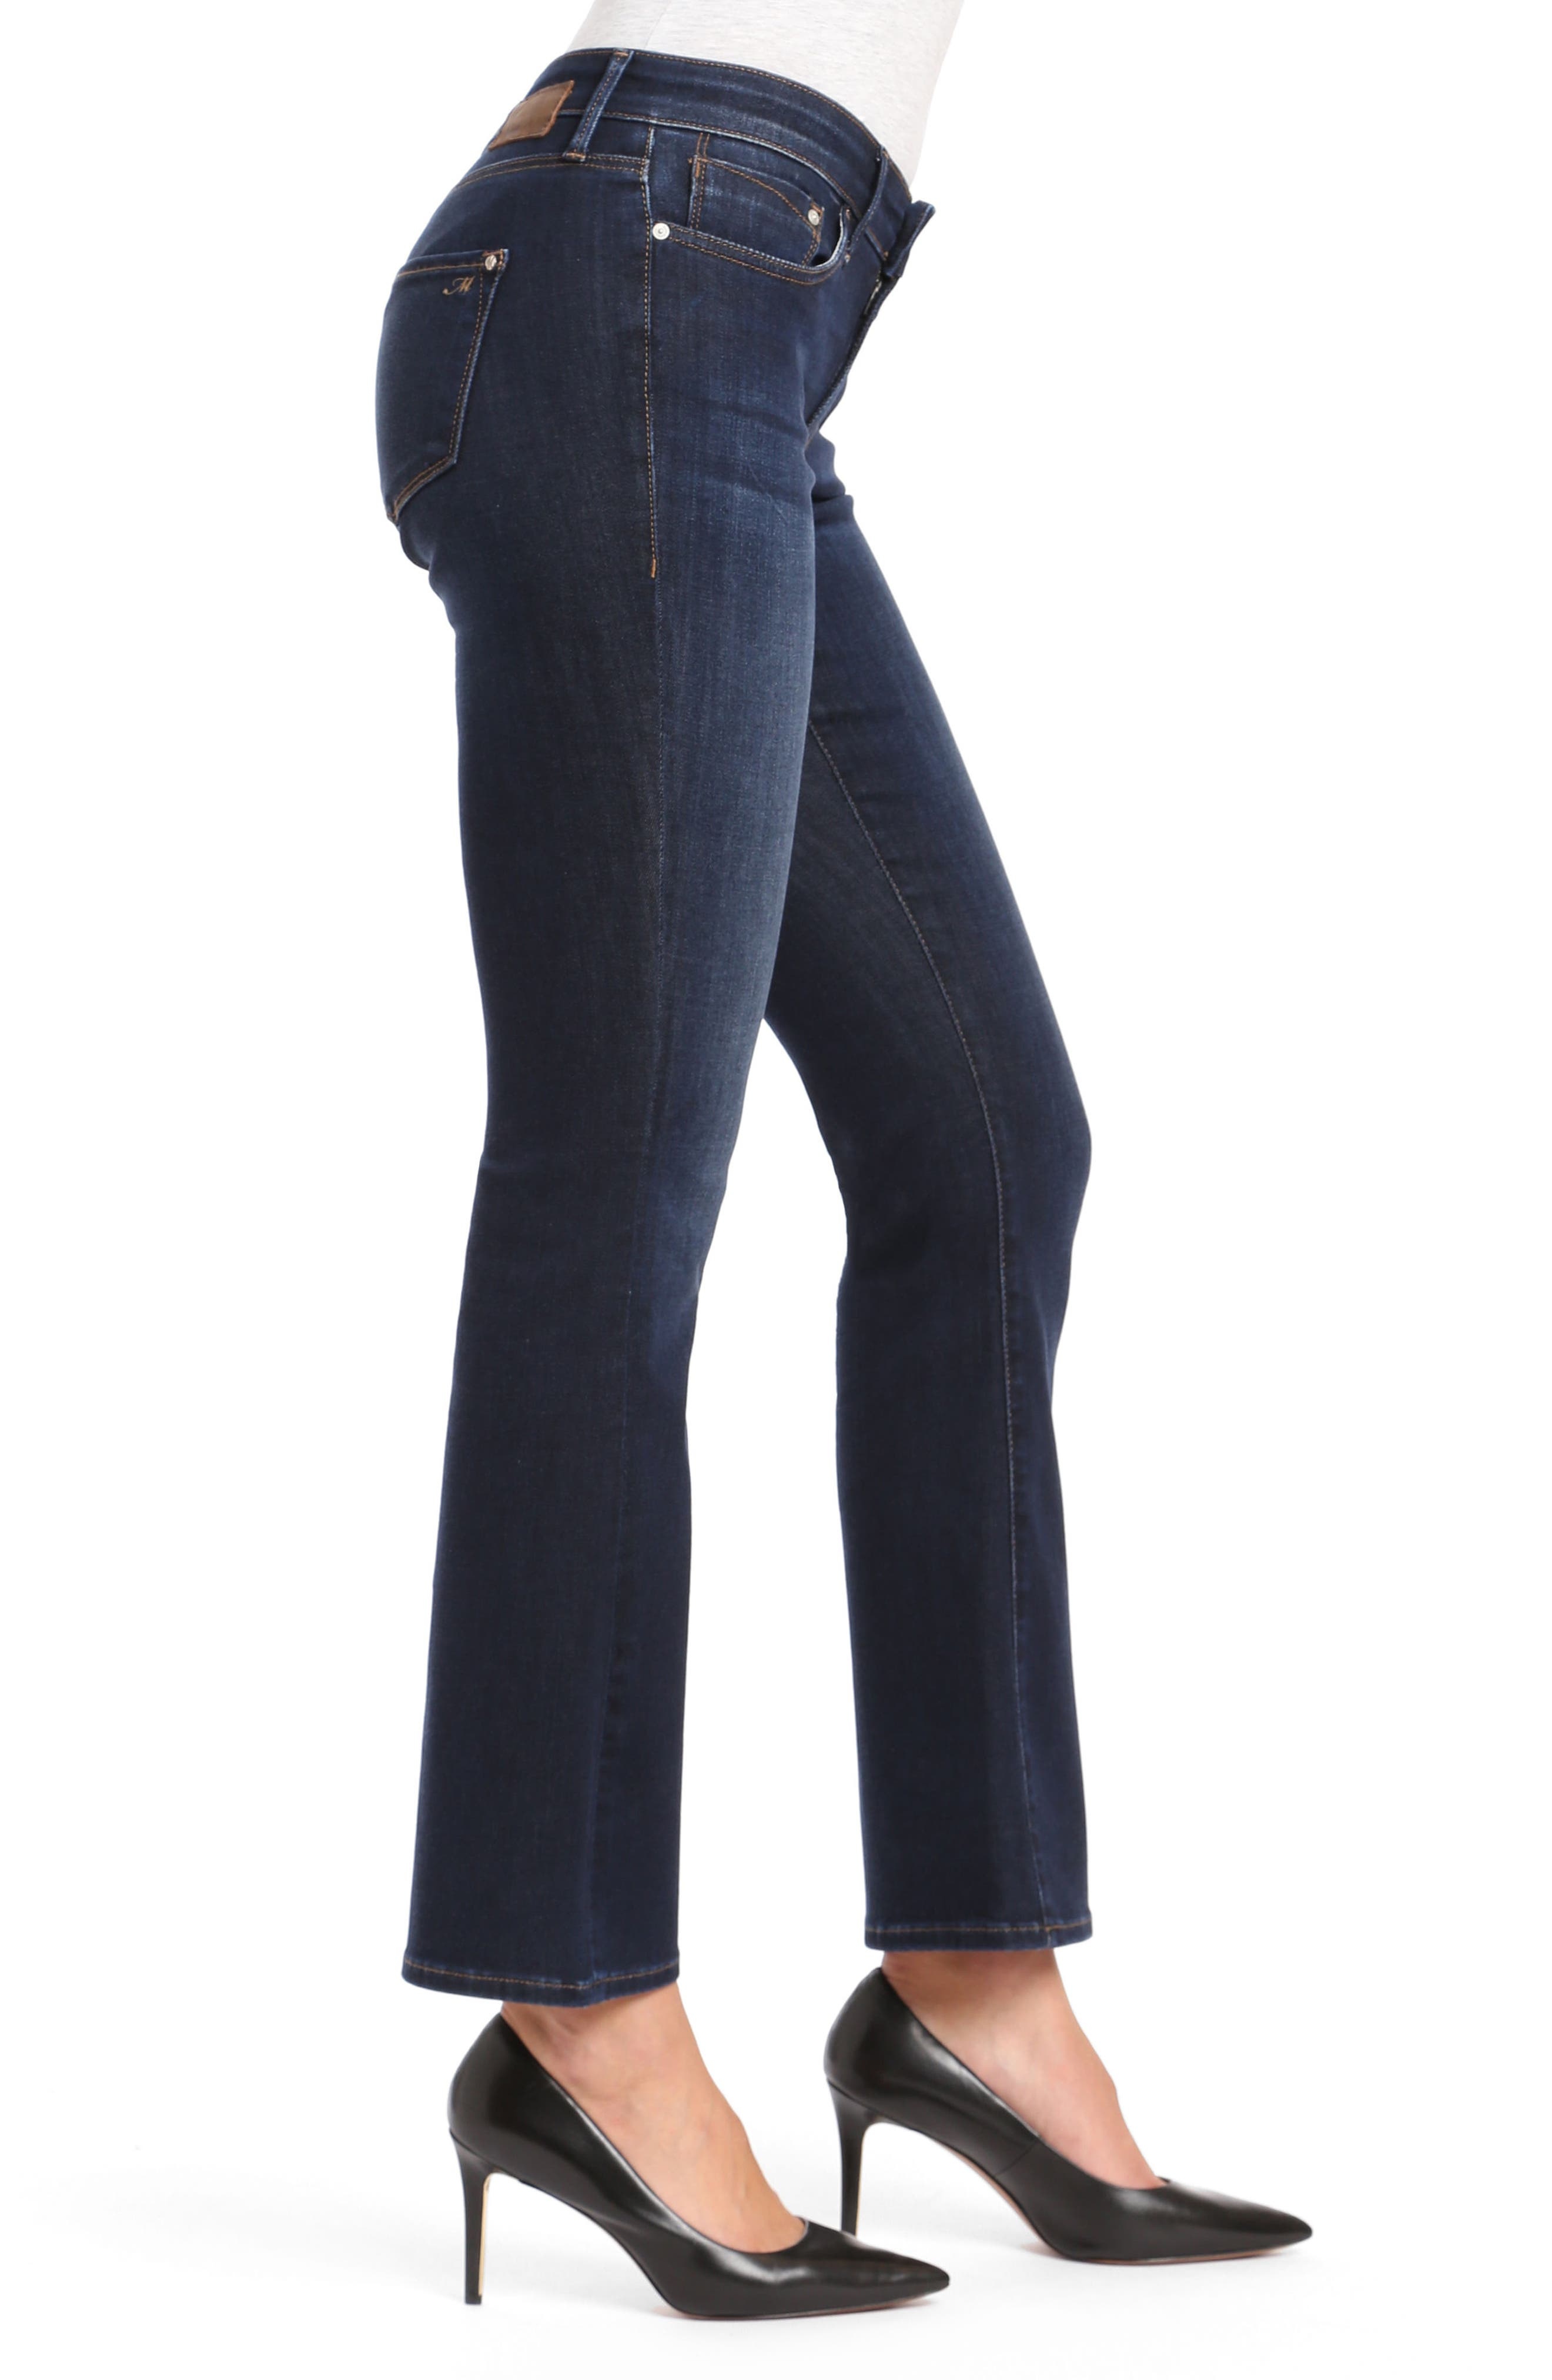 Molly Classic Bootcuts Jeans,                             Alternate thumbnail 3, color,                             DEEP SUPER SOFT